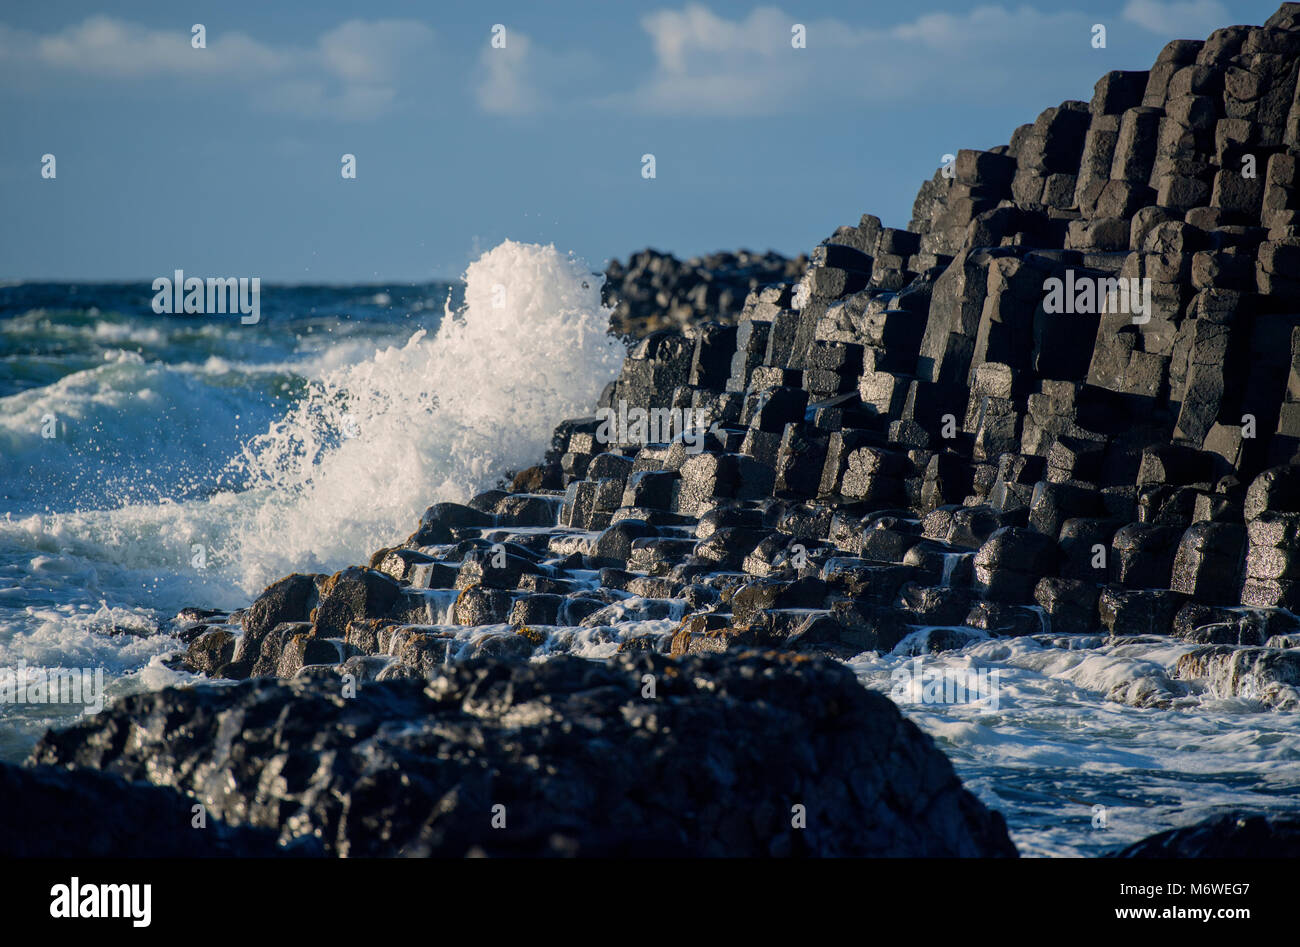 Wave hitting the Giant's Causeway in County Antrim, Northern Ireland - Stock Image